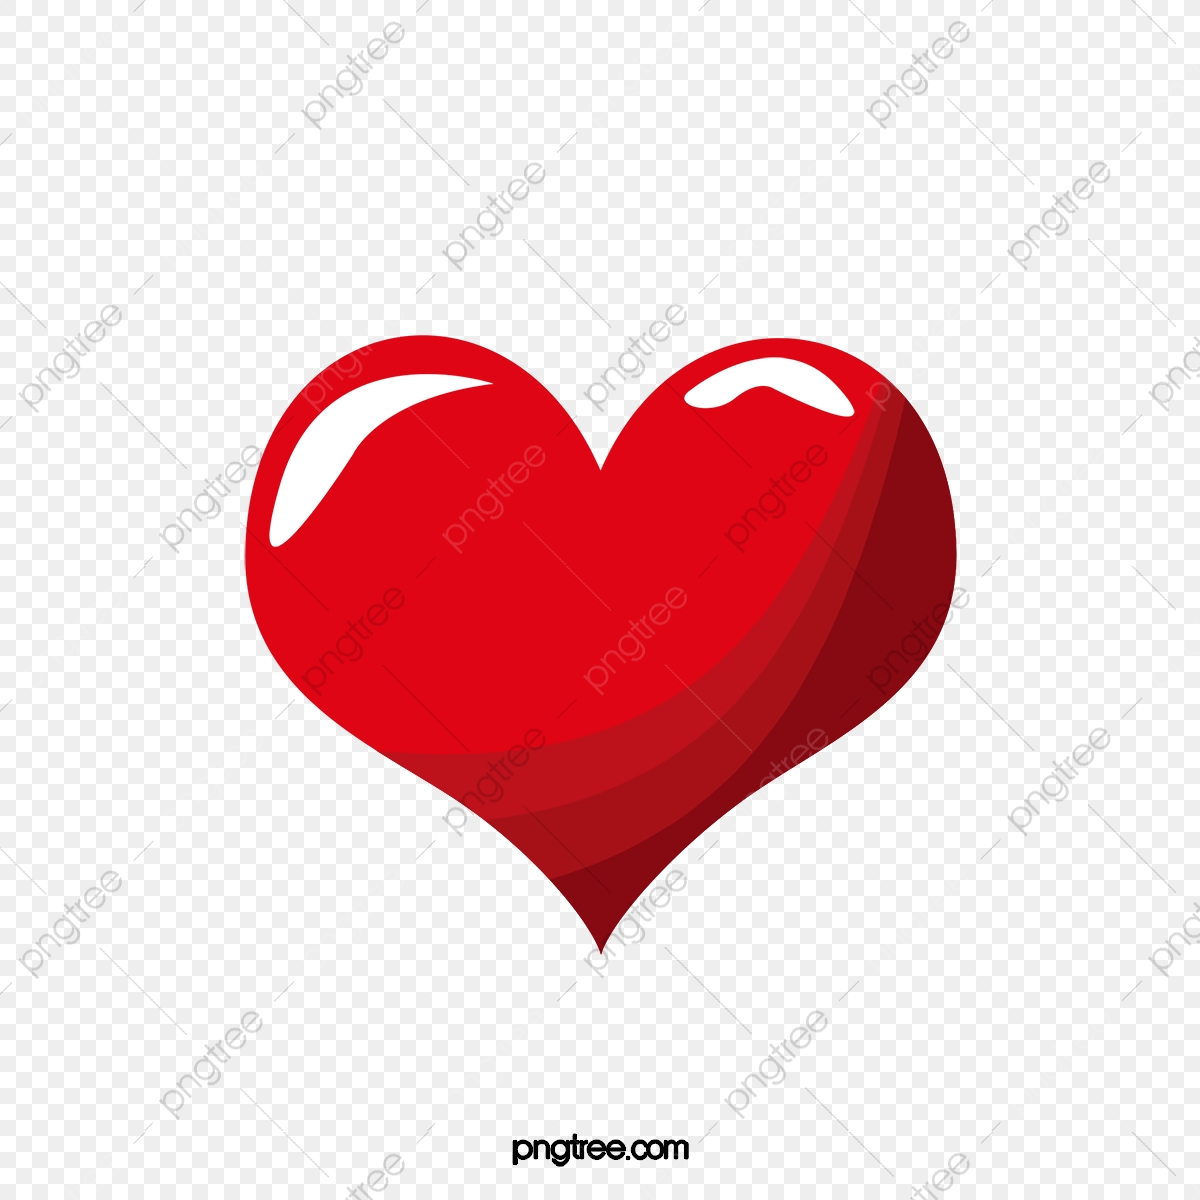 Red Heart Cartoon Heart Outline, Heart Clipart, Cartoon